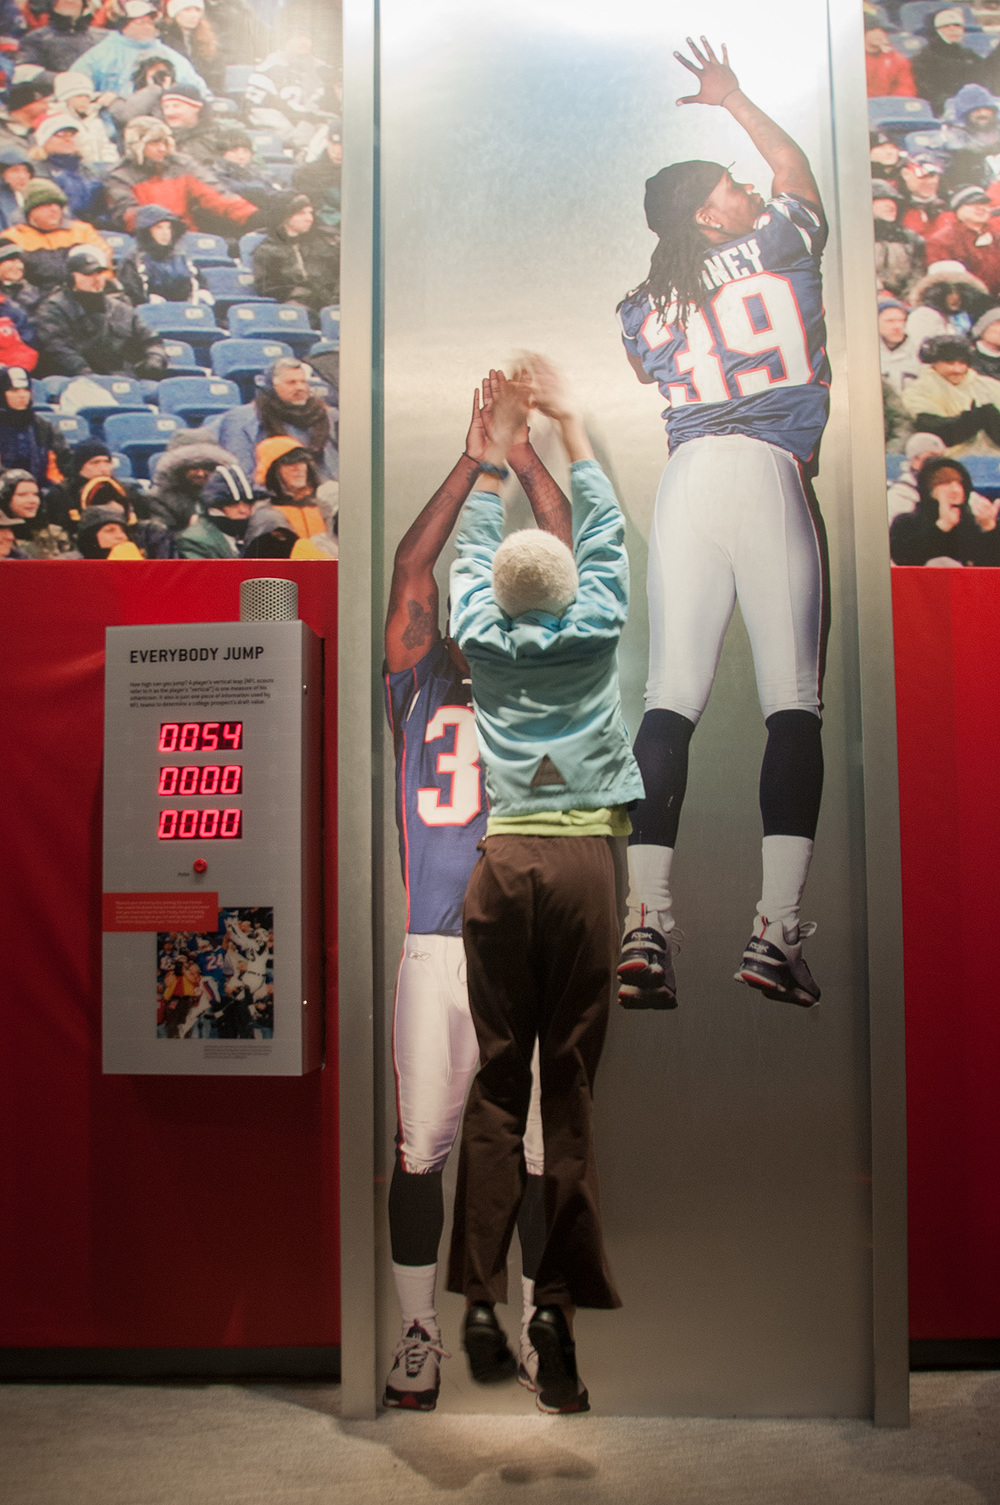 A young fan tries her skills in one of the interactive exhibits of The Hall at Patriot's place.